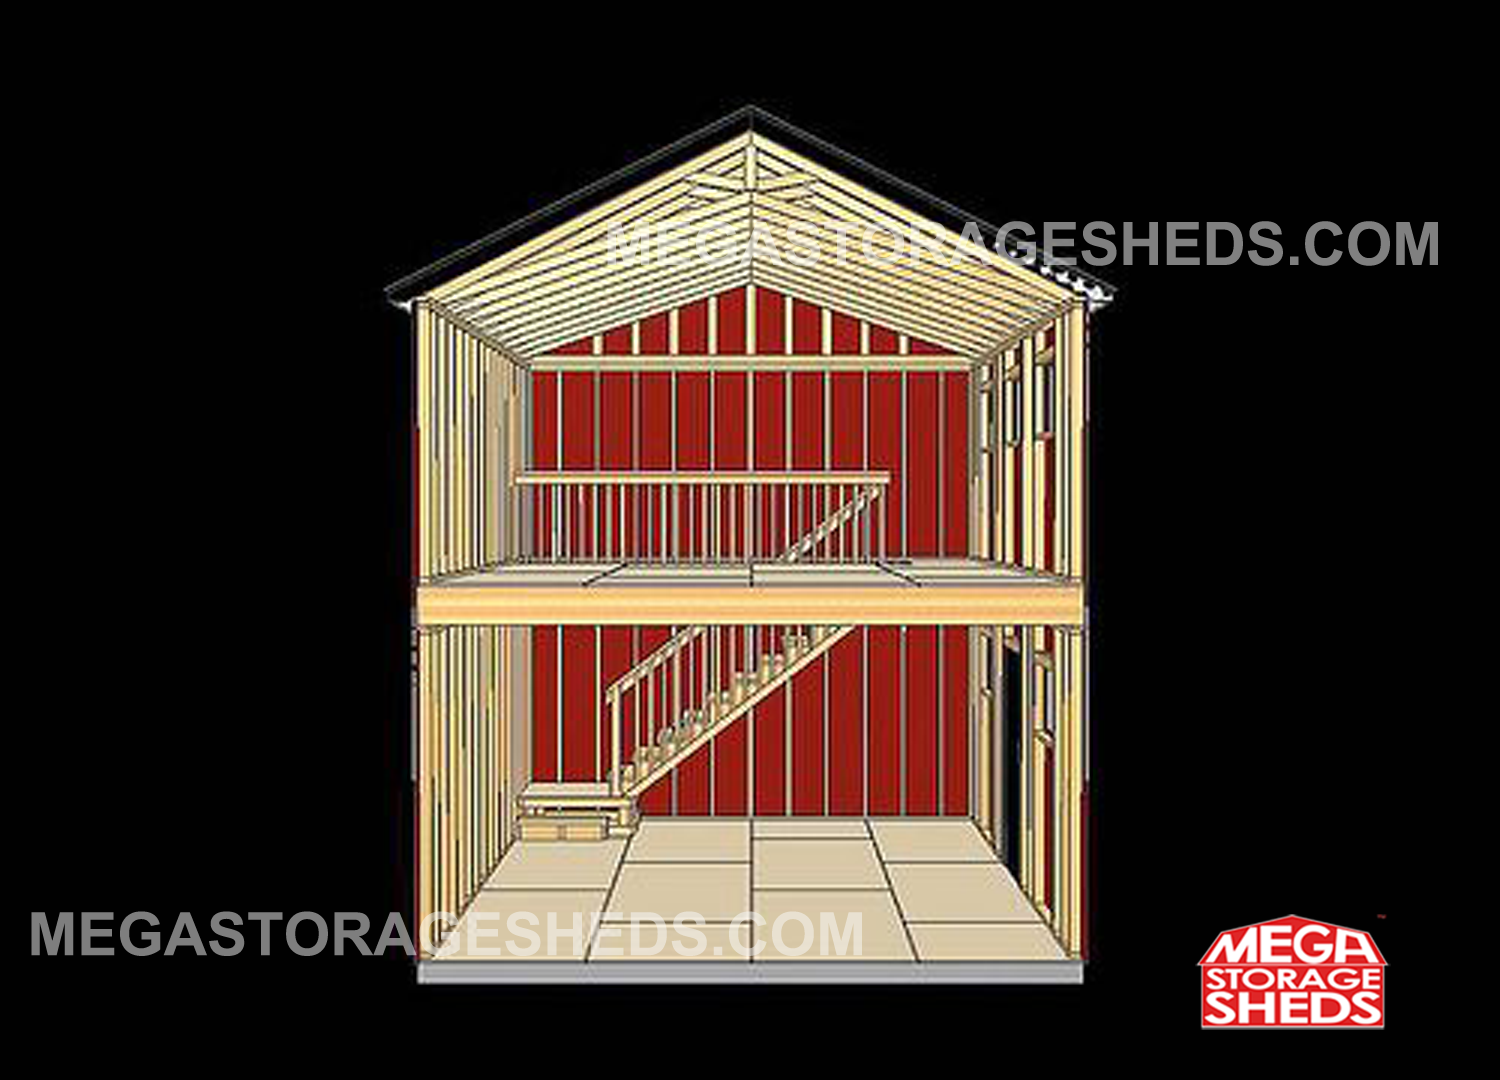 Mega Storage Sheds Two Story Cabins